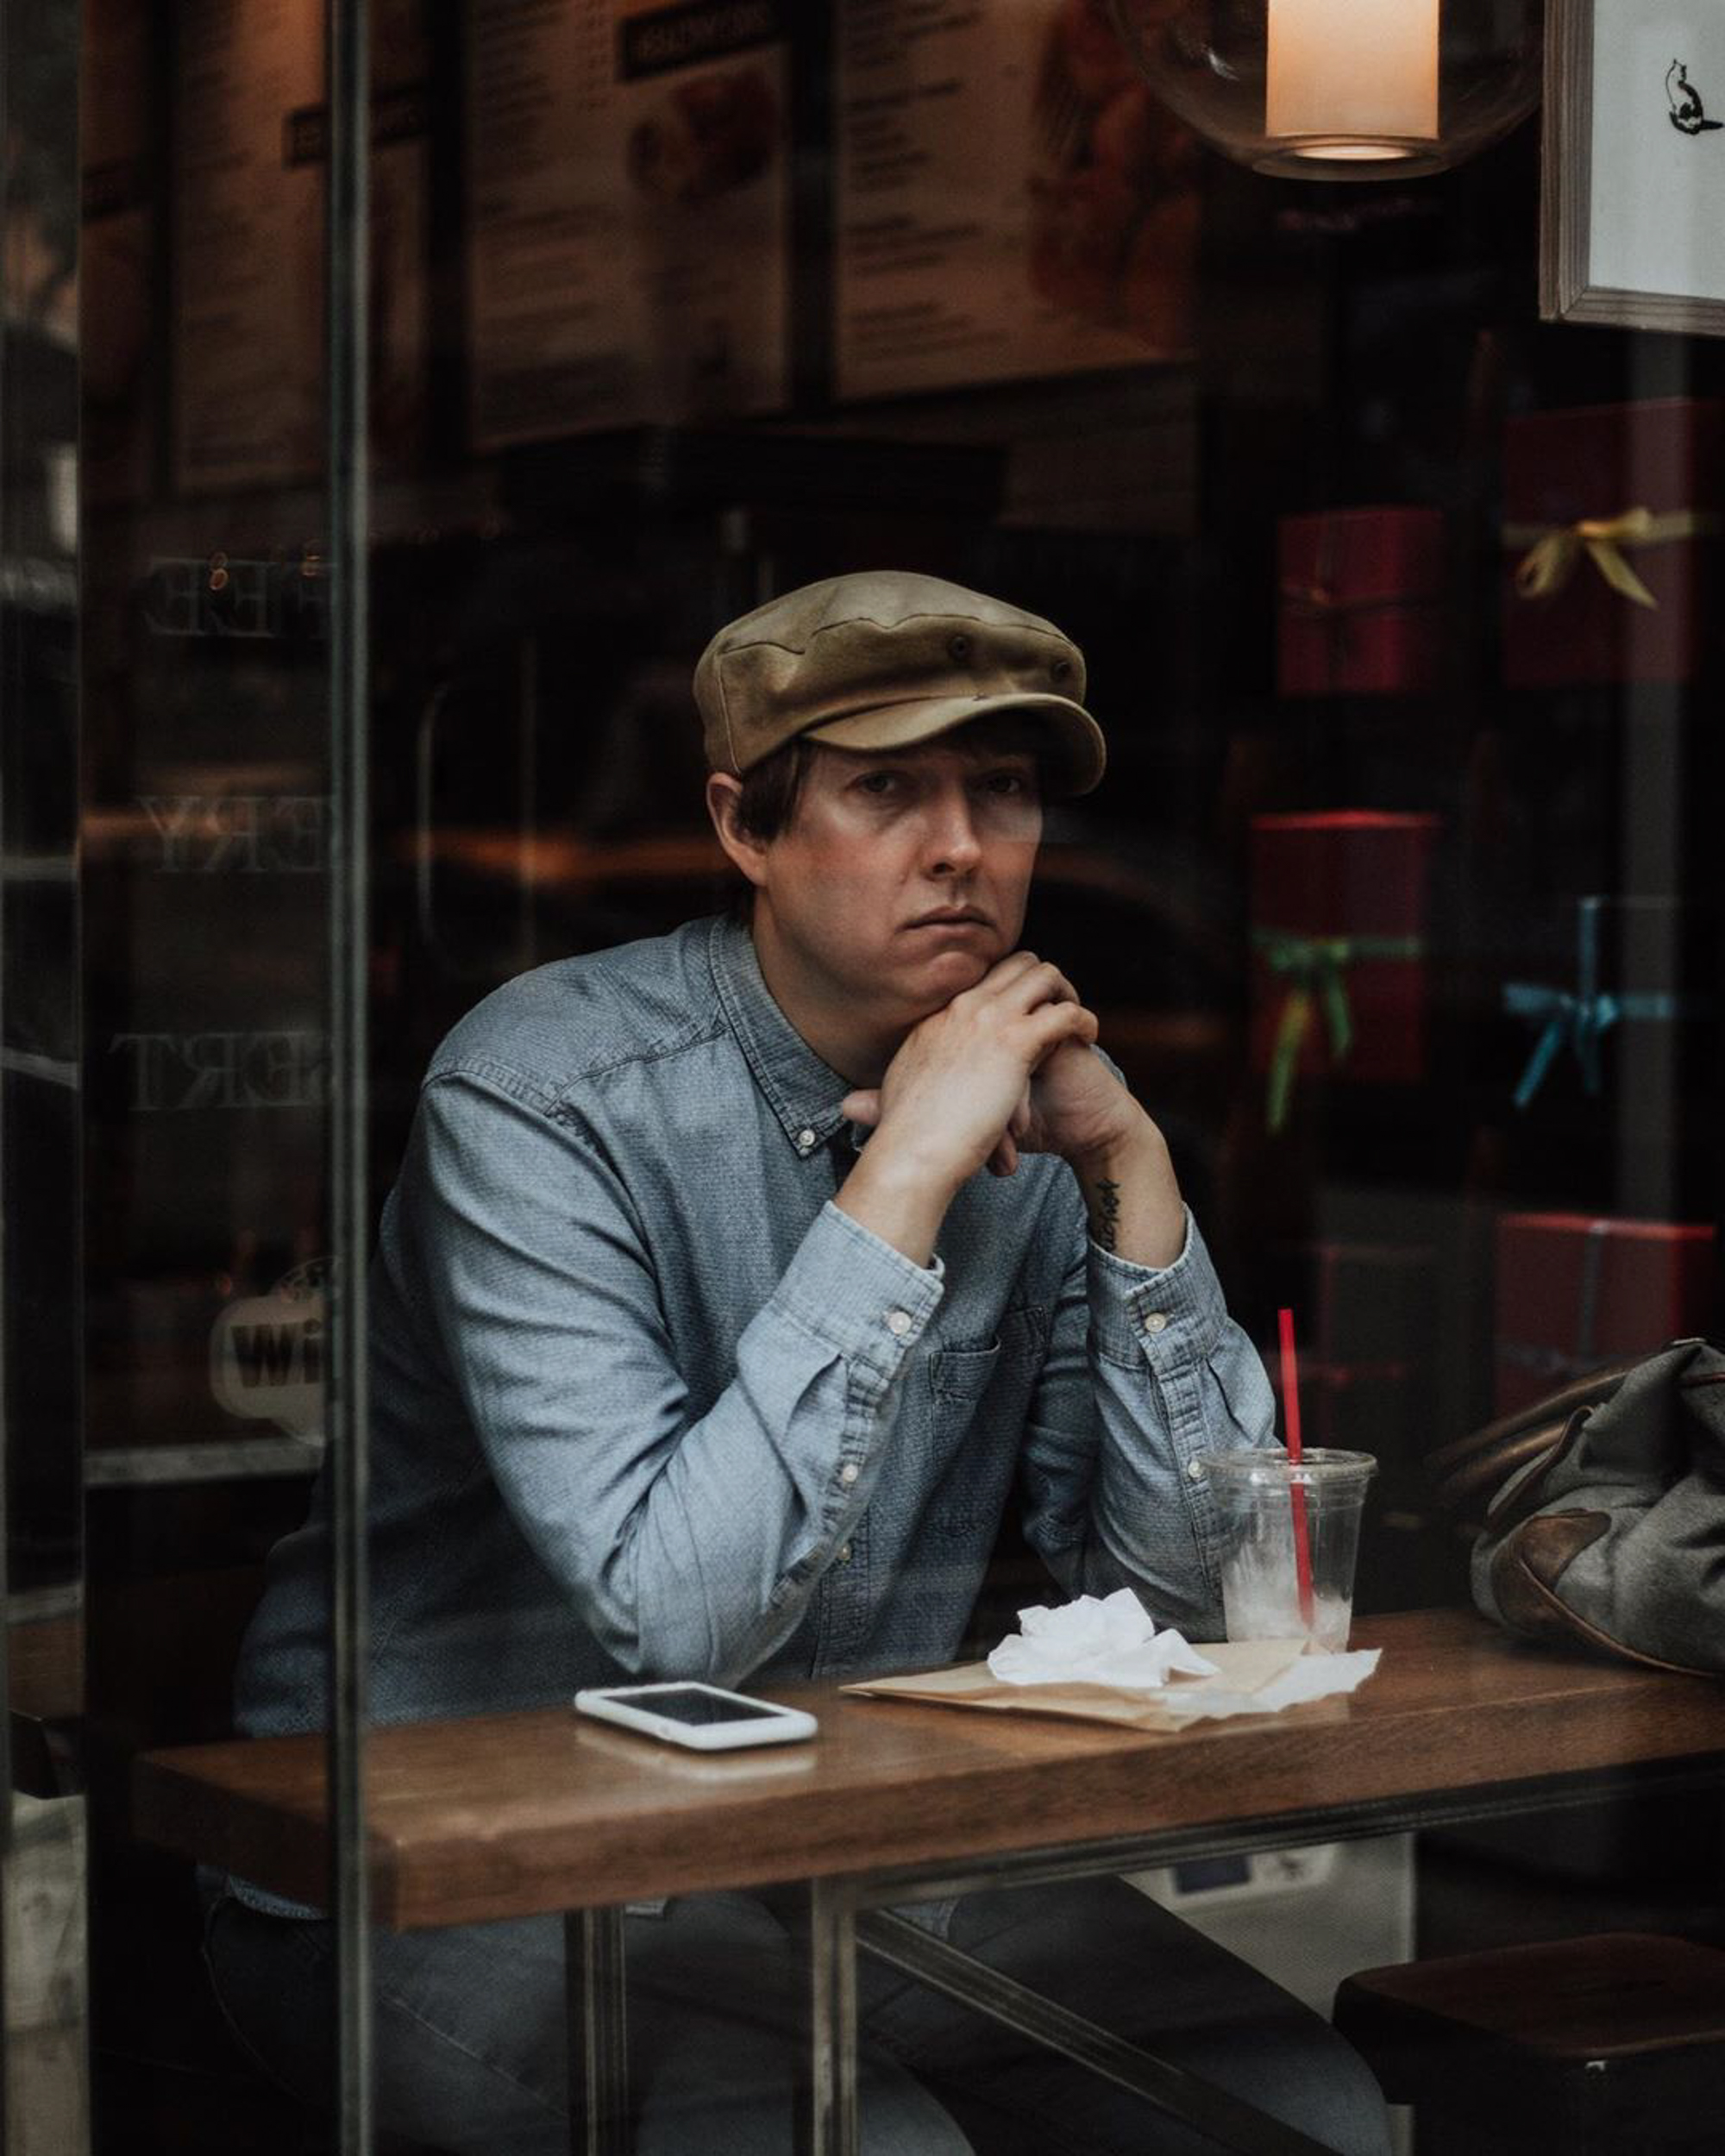 woman sitting in a coffee shot, photography of a woman in the window, old man sitting in a diner, michelle viljoen, photography, street photography, new york, new york street photography, reflection photography,